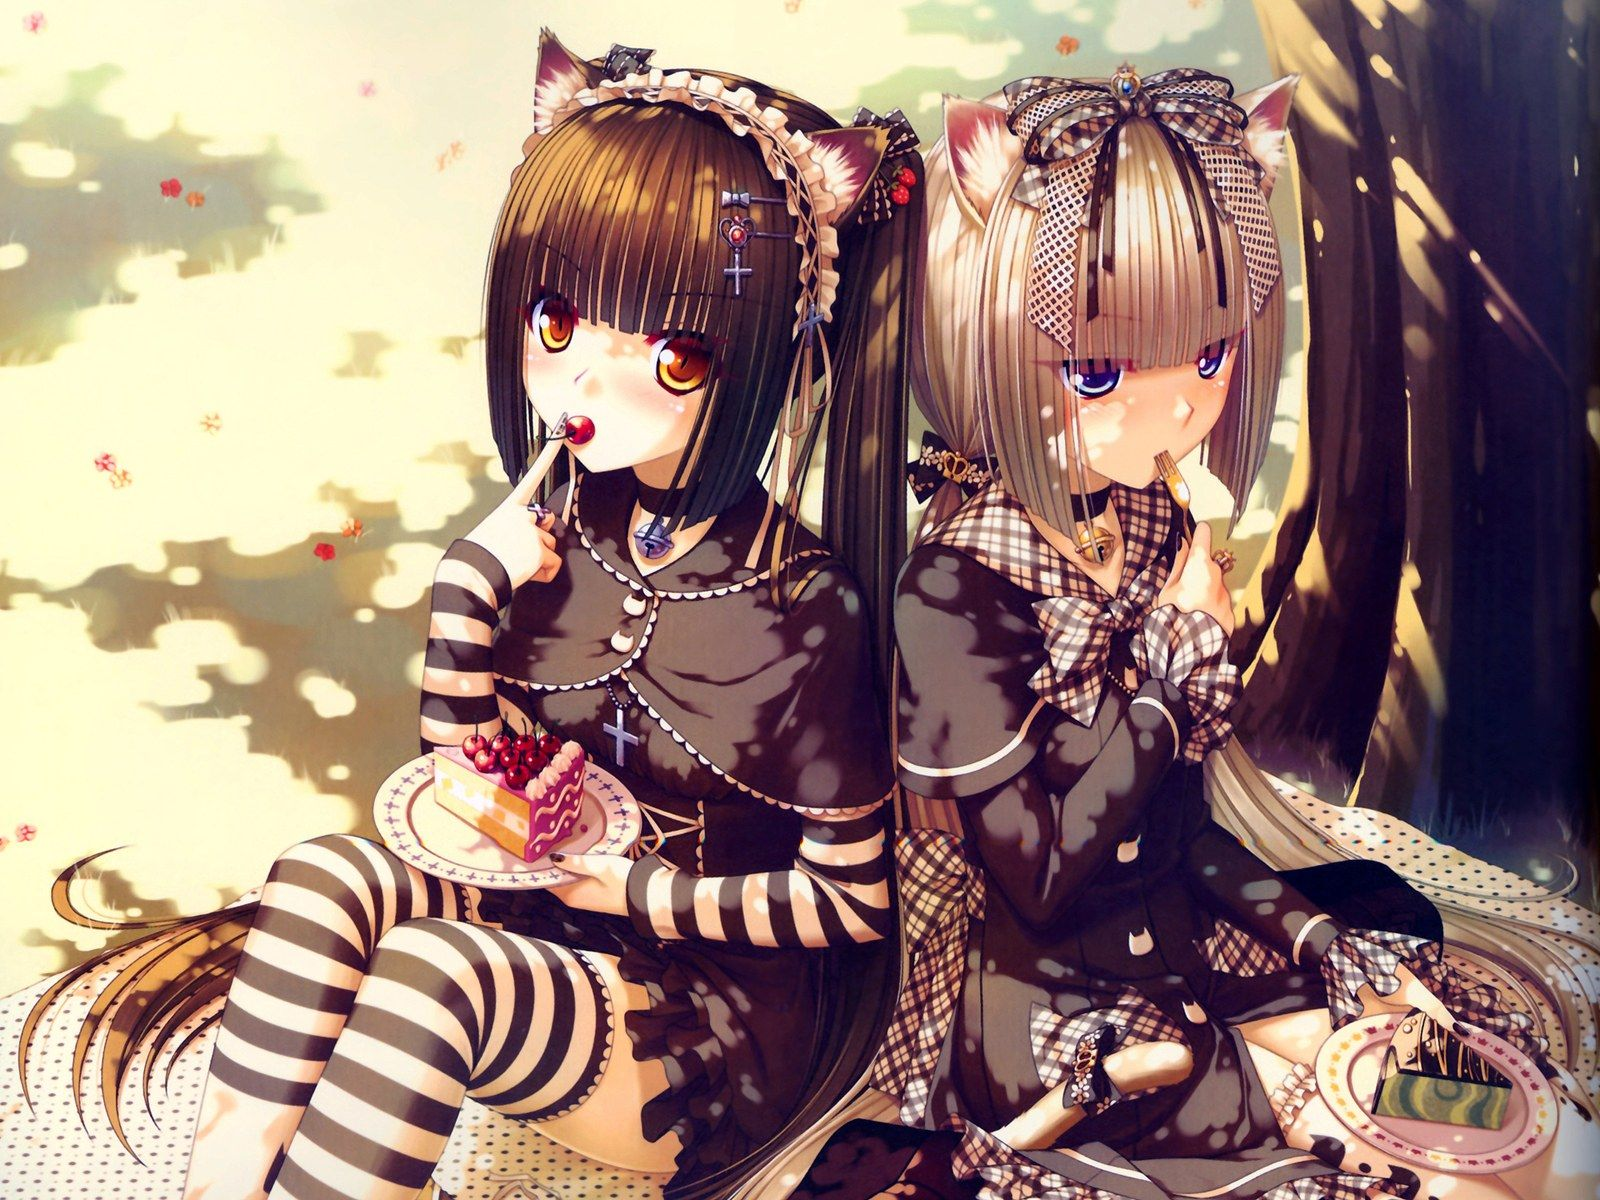 Anime Bff Wallpapers Top Free Anime Bff Backgrounds Wallpaperaccess